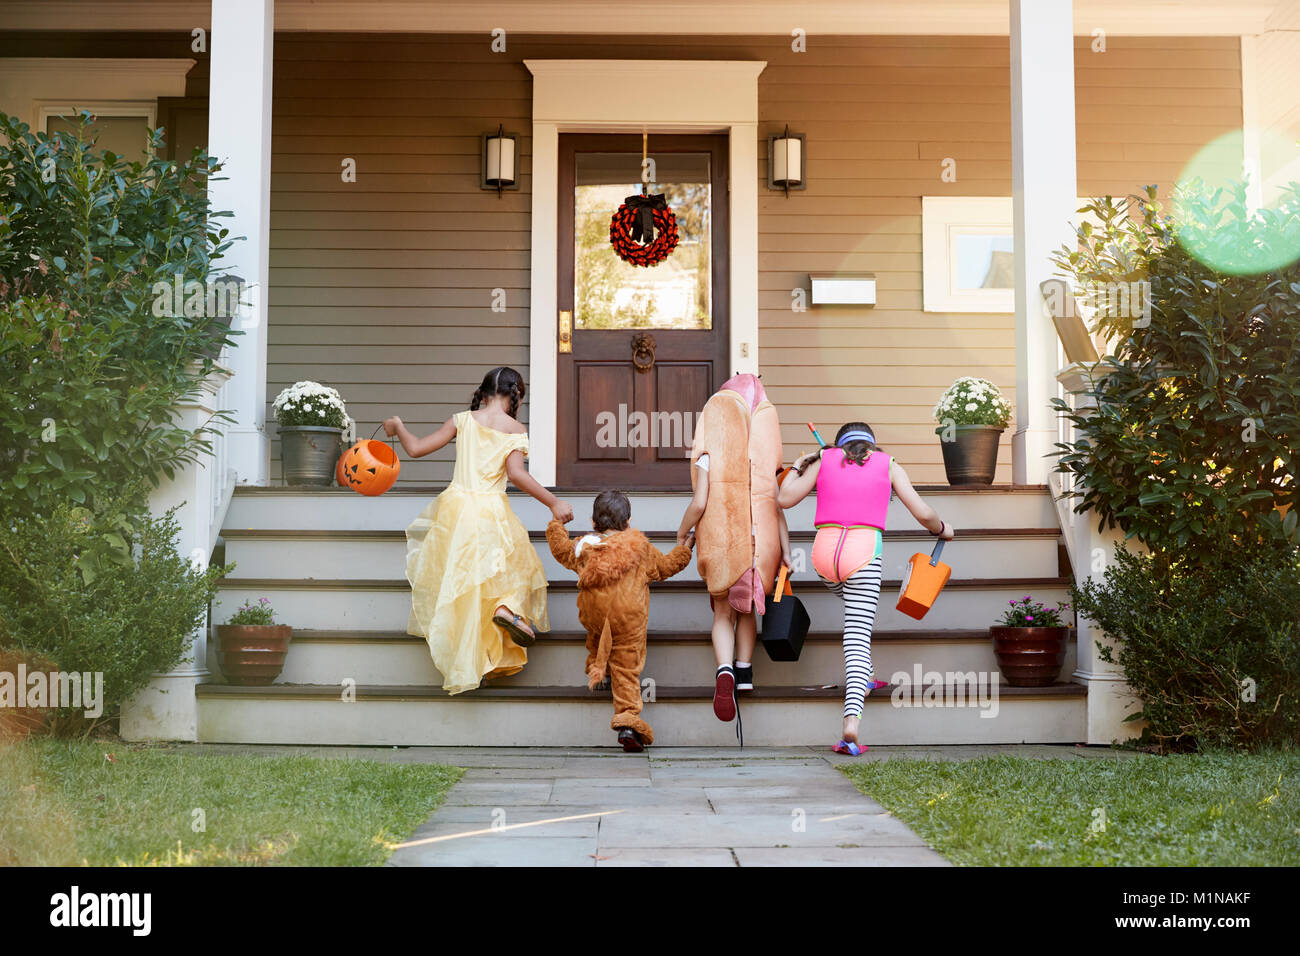 Children Wearing Halloween Costumes For Trick Or Treating - Stock Image